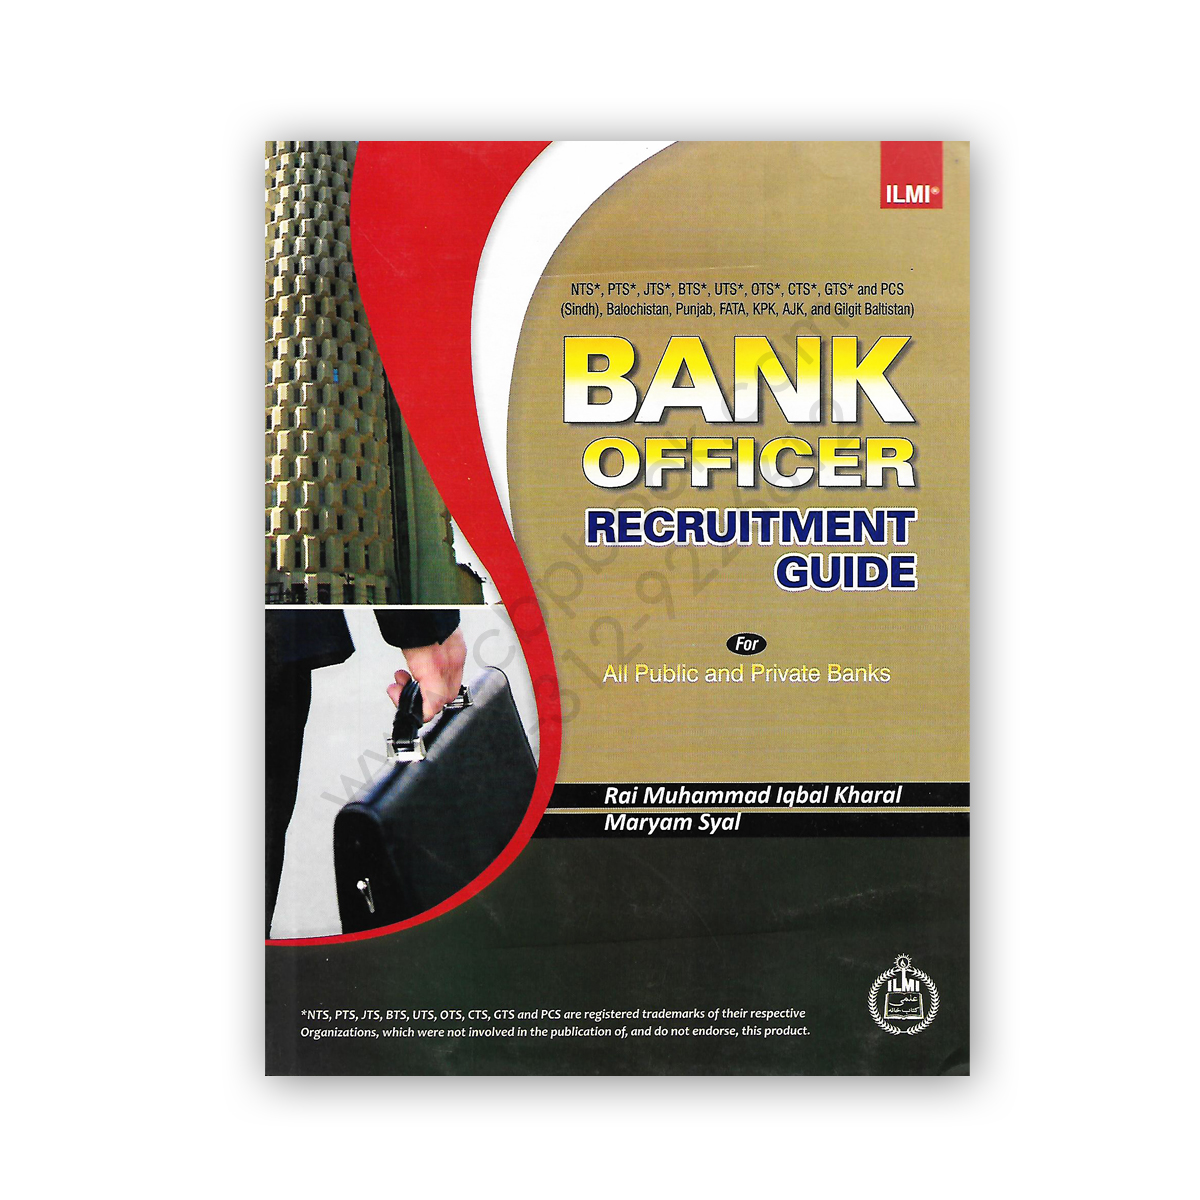 BankExamsIndia.com - All About IBPS Bank Exams, Govt and ...